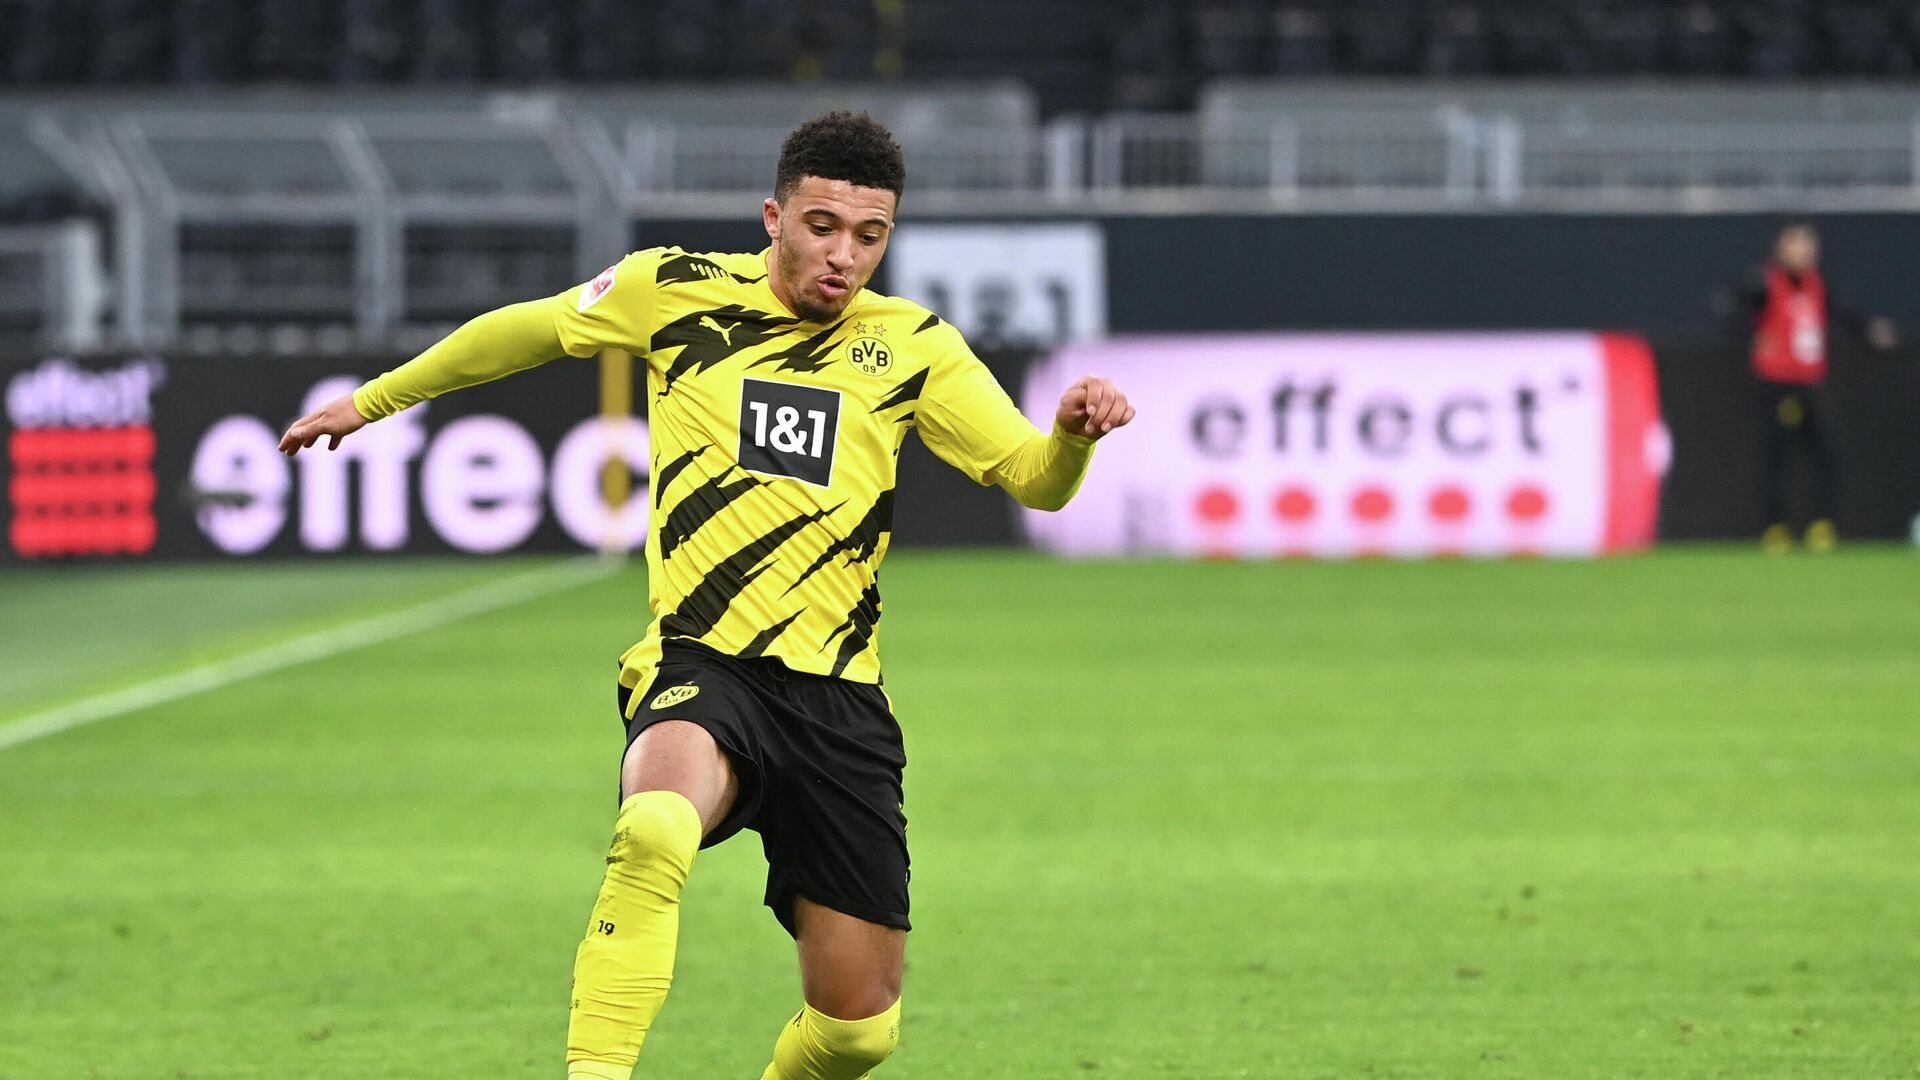 Dortmund's English midfielder Jadon Sancho plays the ball during the German first division Bundesliga football match between Borussia Dortmund and DSC Arminia Bielefeld in Dortmund, western Germany, on February 27, 2021. (Photo by Ina Fassbender / various sources / AFP) / DFL REGULATIONS PROHIBIT ANY USE OF PHOTOGRAPHS AS IMAGE SEQUENCES AND/OR QUASI-VIDEO - РИА Новости, 1920, 05.04.2021